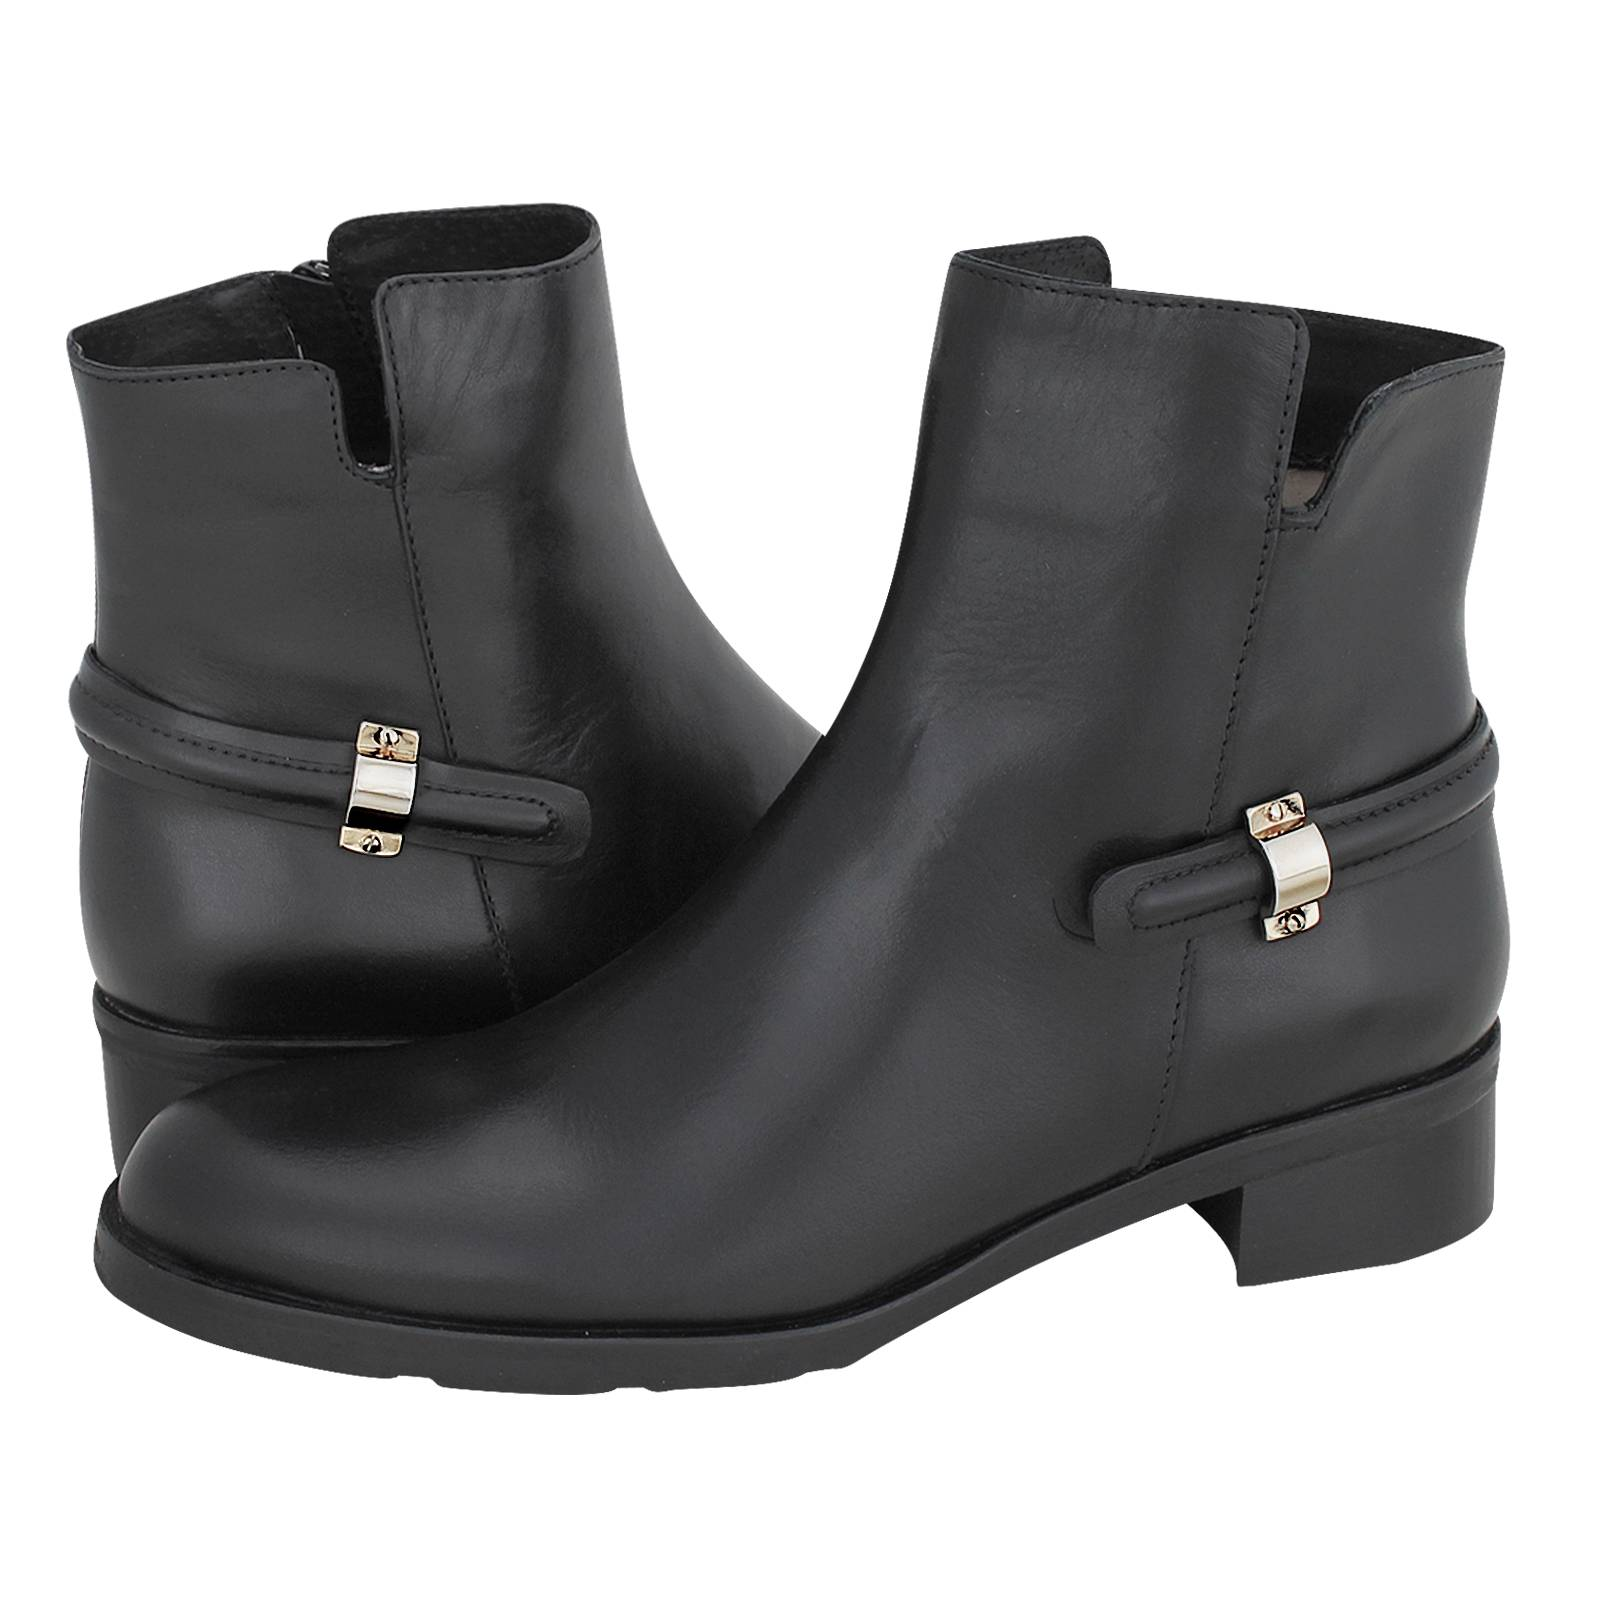 Thouez - Esthissis Women s low boots made of leather - Gianna ... d0b725c8787